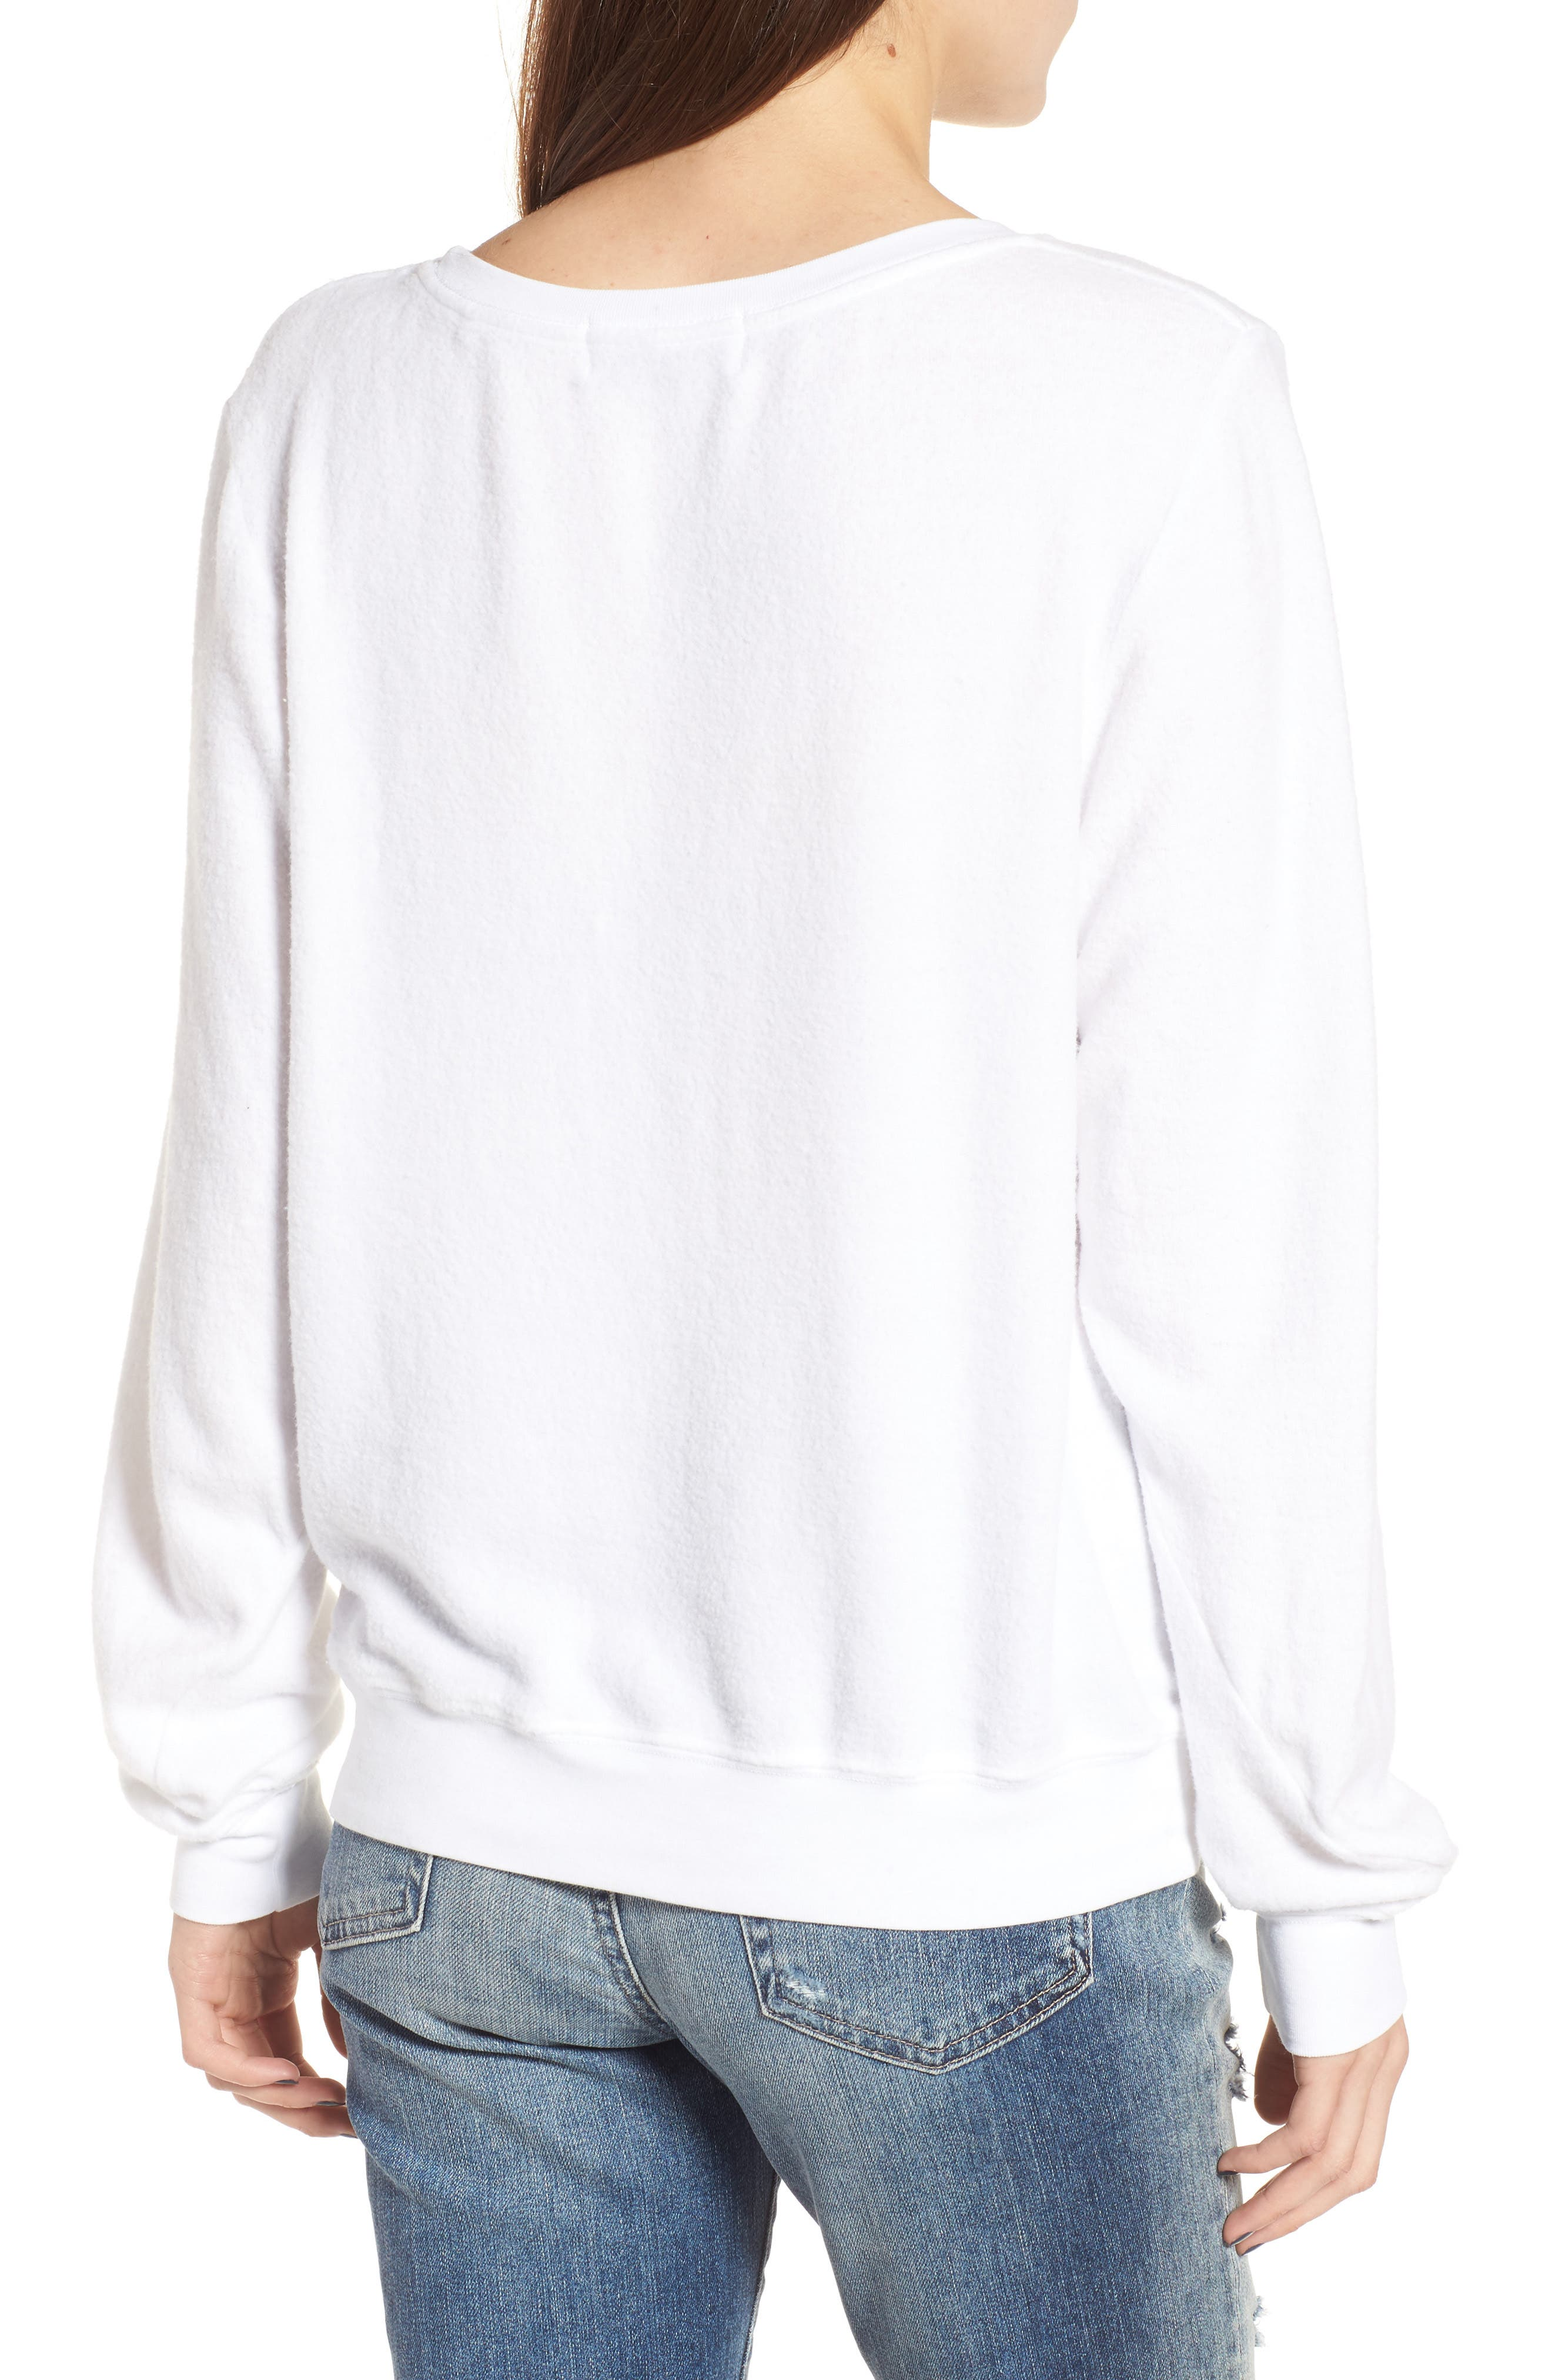 Beverly Hills Sweatshirt,                             Alternate thumbnail 2, color,                             Clean White